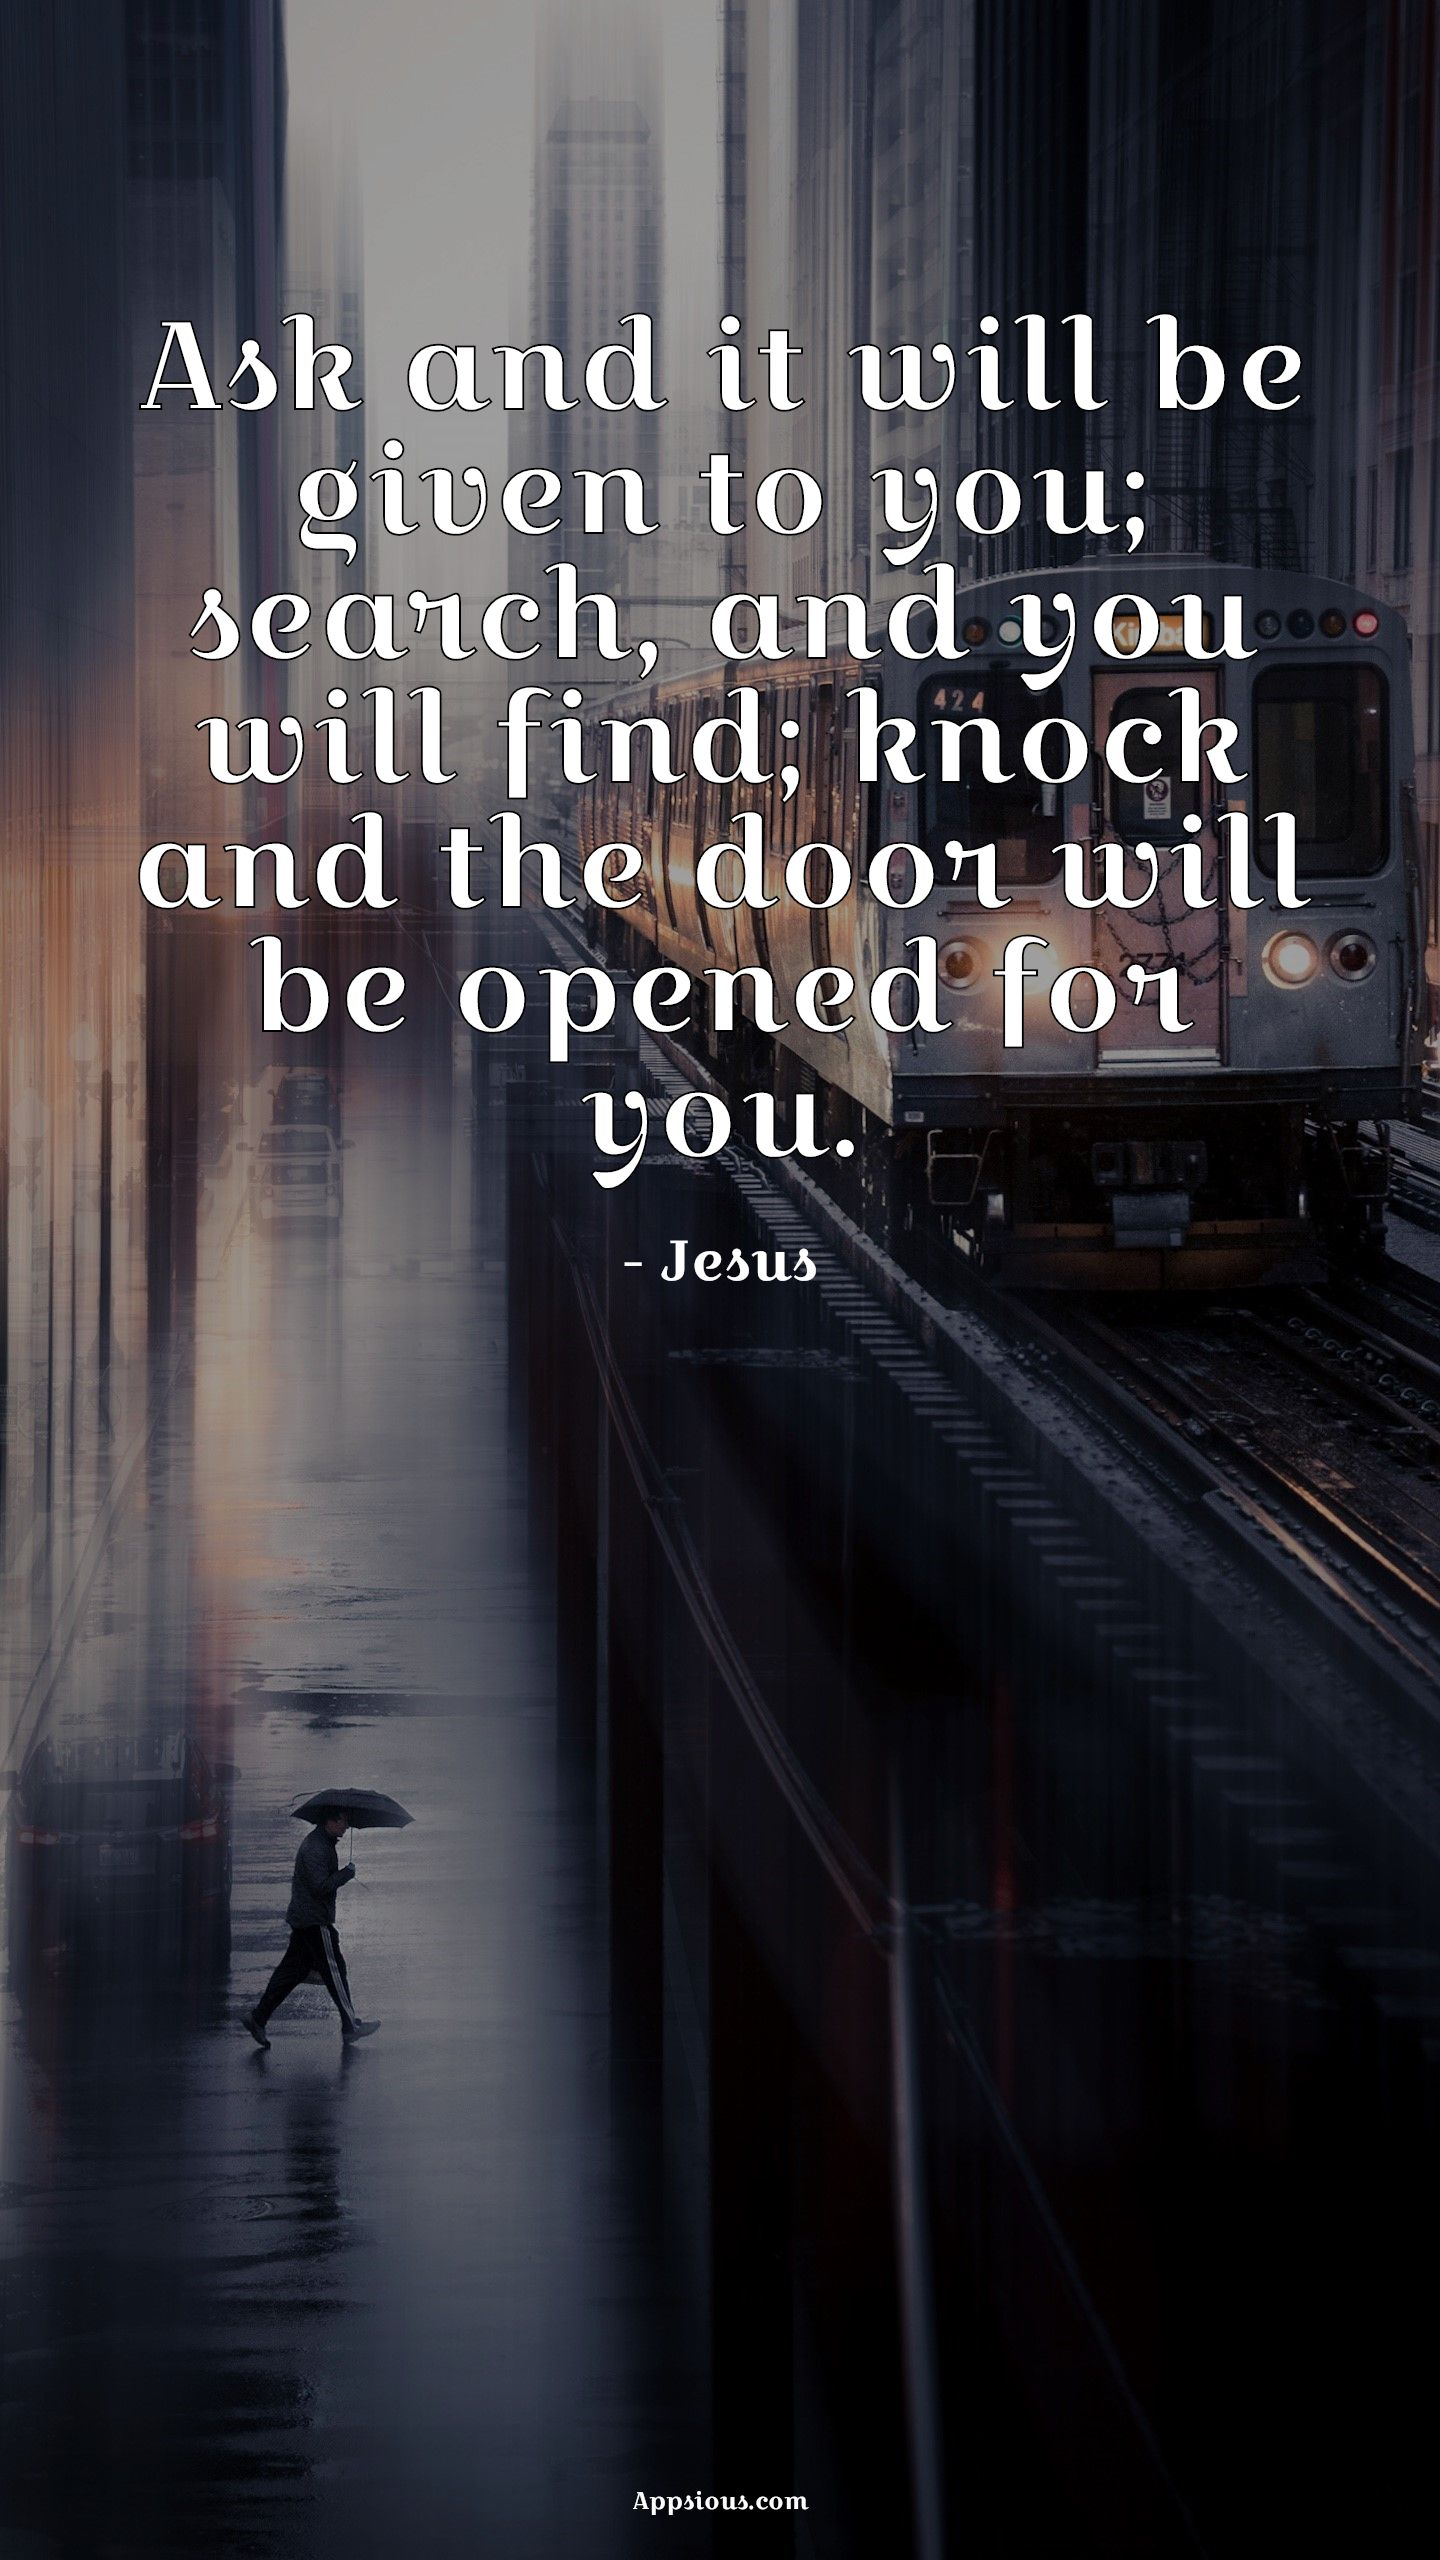 Ask and it will be given to you; search, and you will find; knock and the door will be opened for you.